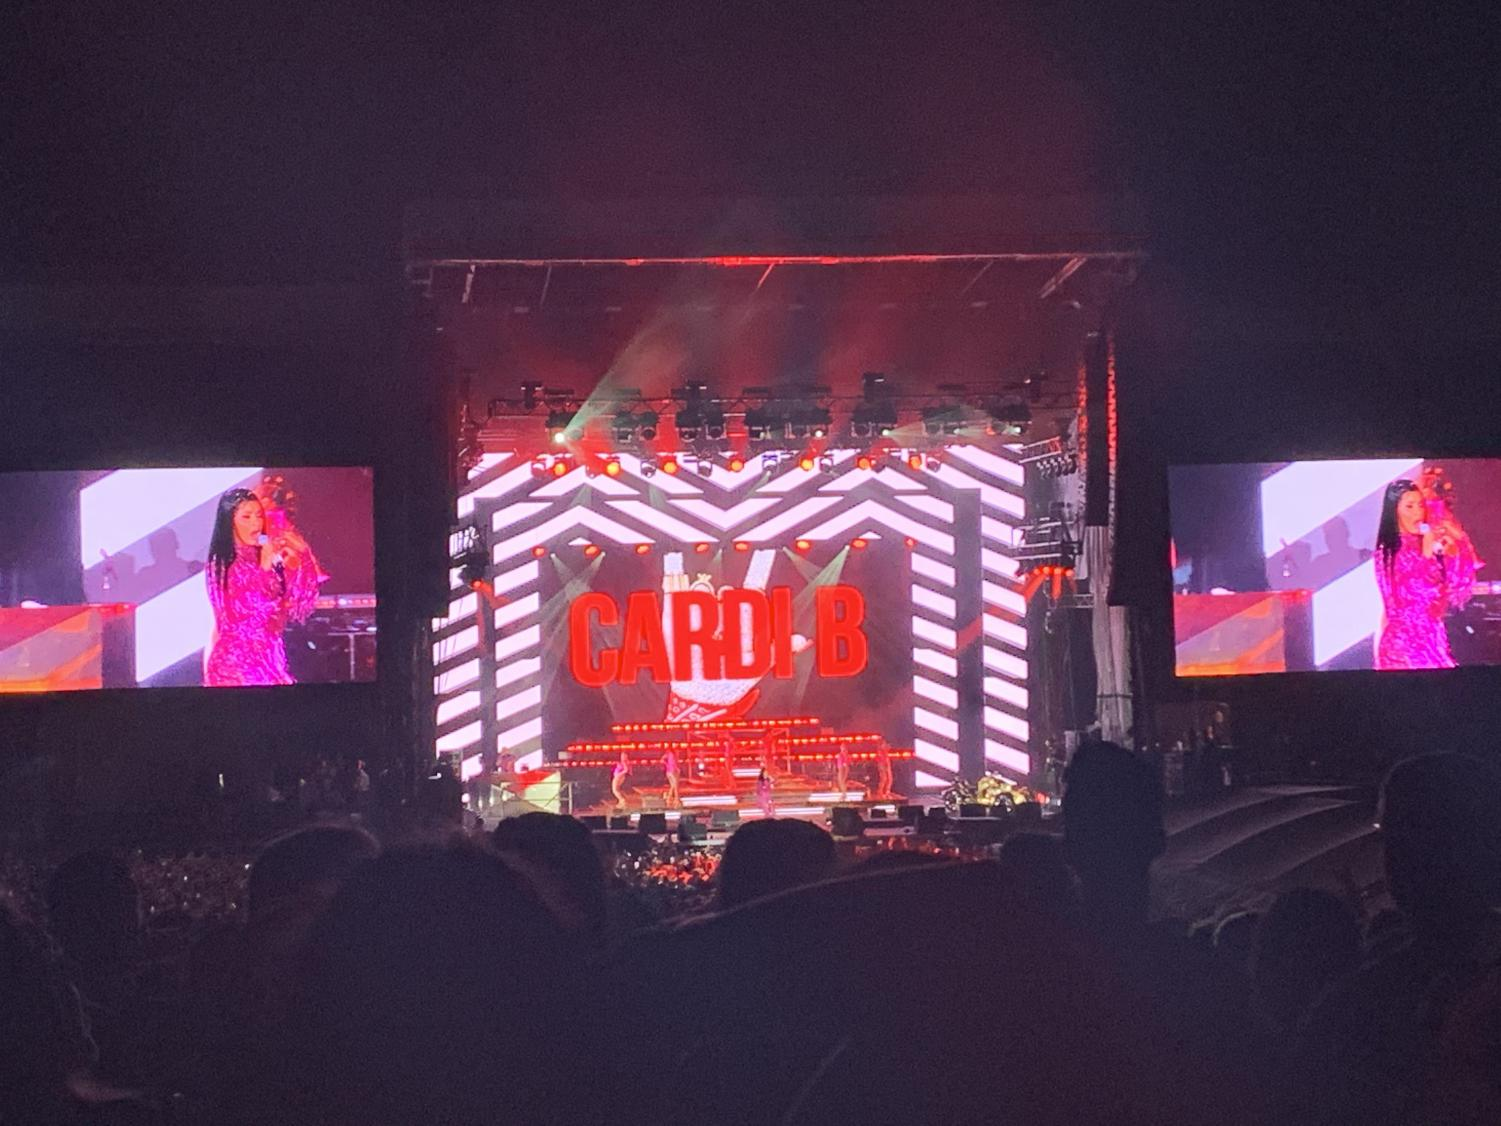 """Cardi B's flamboyant performance gripped fans as people sang and danced along to her most famous songs: """"Bartier Cardi"""", """"Money Bag"""", and """"Bodak Yellow."""" """"Cardi B's performance had fire and strobe lights, so it was very energetic. Everybody was dancing around me. It even ended with fireworks,"""" junior Skylar Chan said."""